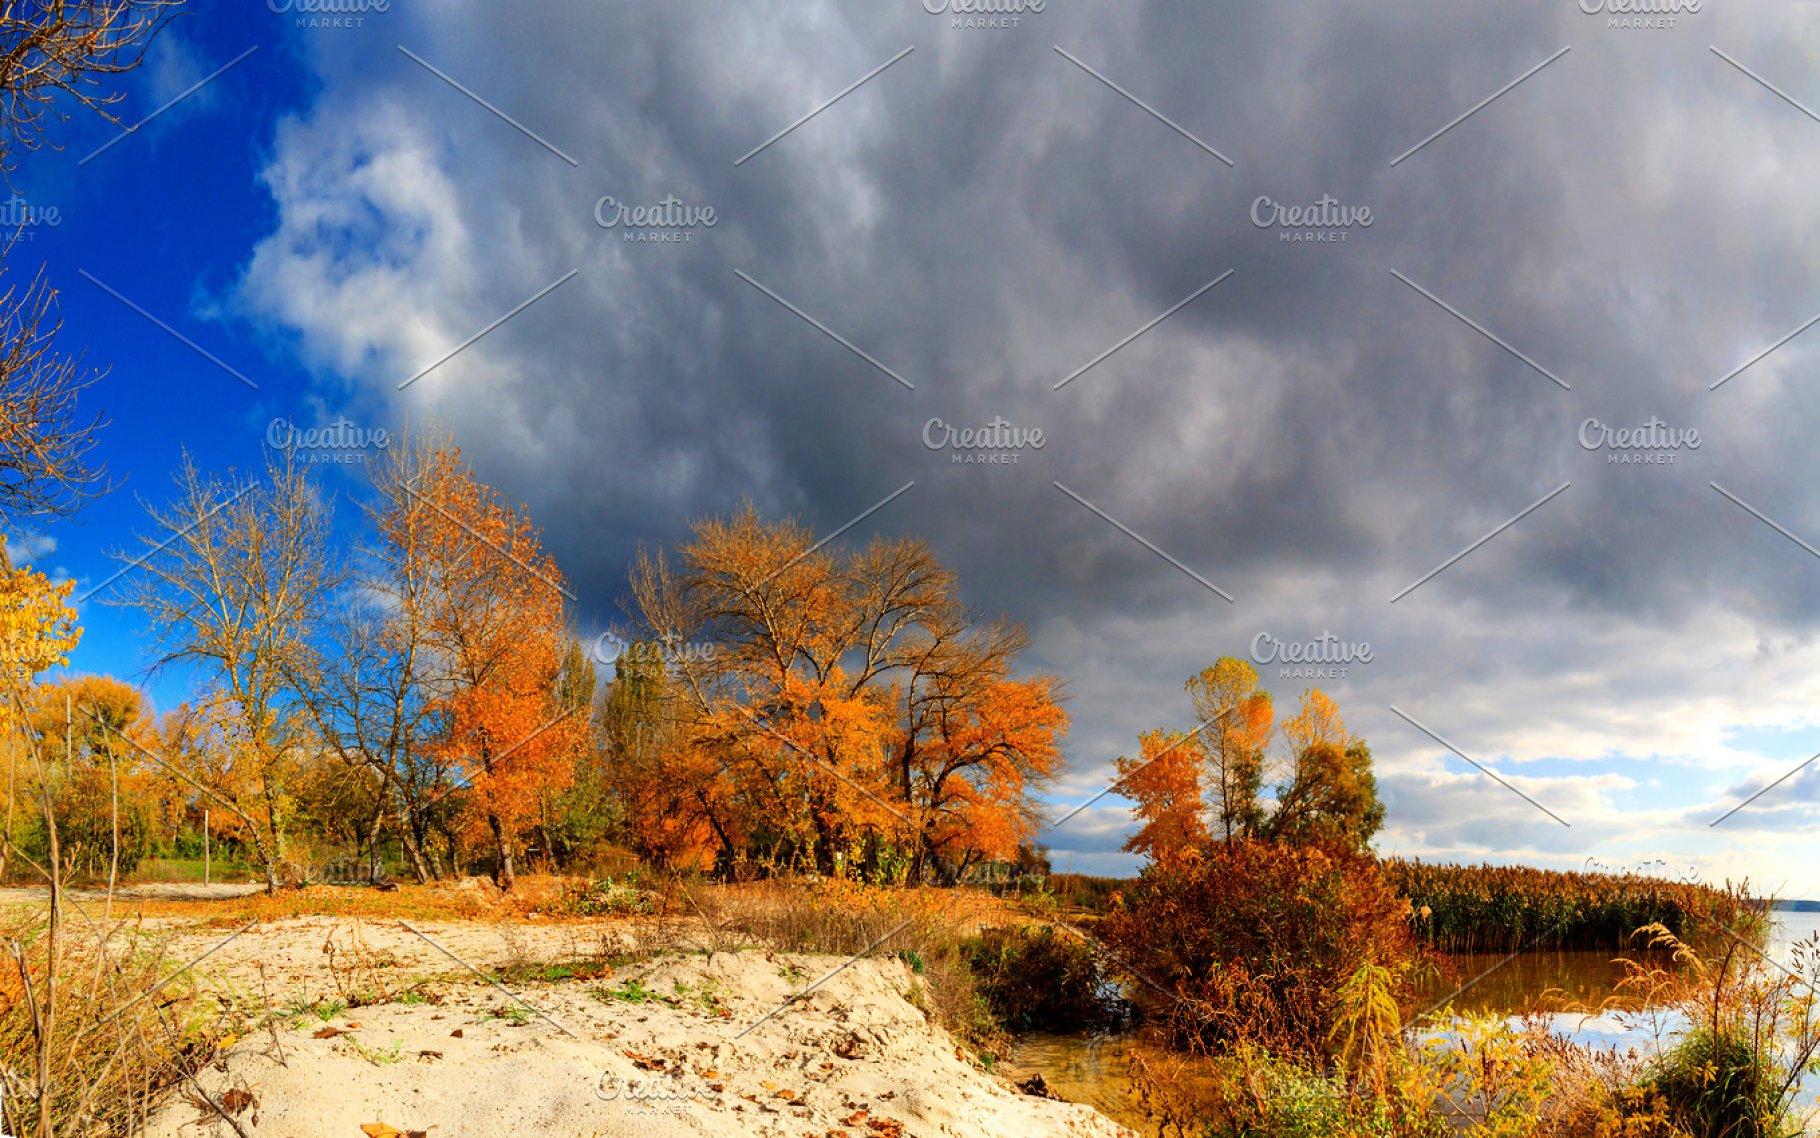 Autumn Landscape Trees With Colored Leaves And Dark Clouds